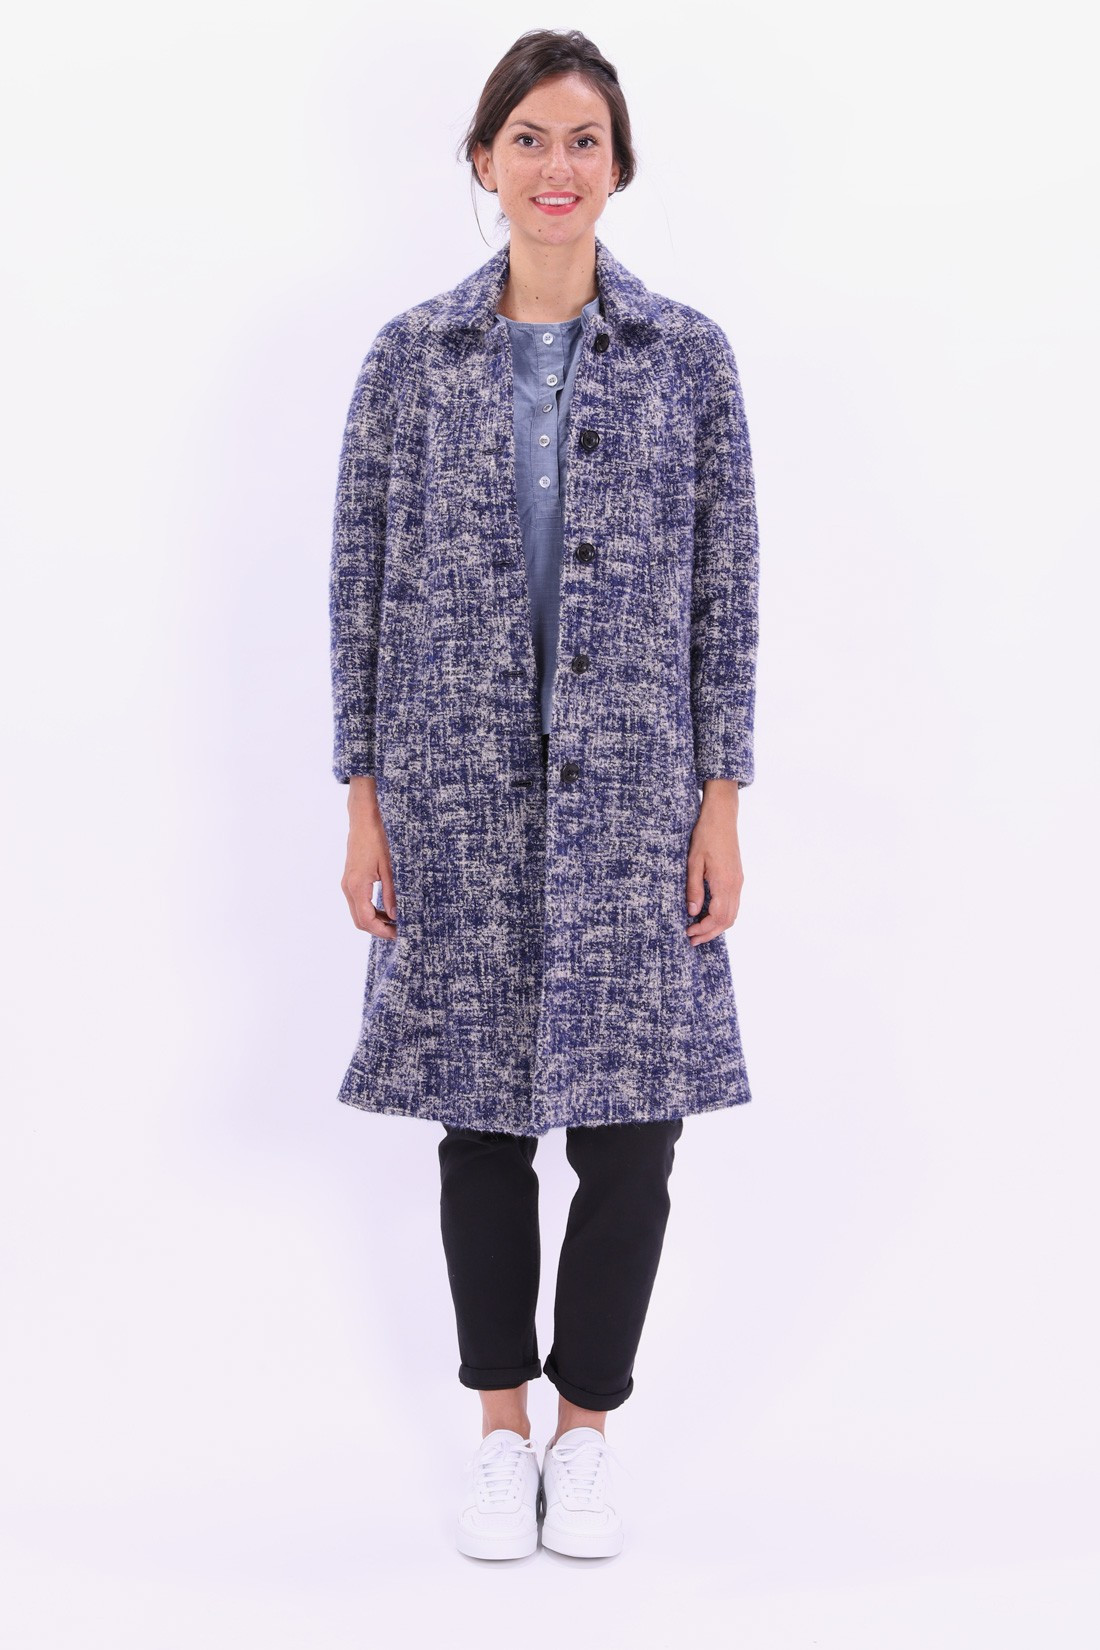 BELLEROSE FOR WOMAN / Mushy coat Combo 1